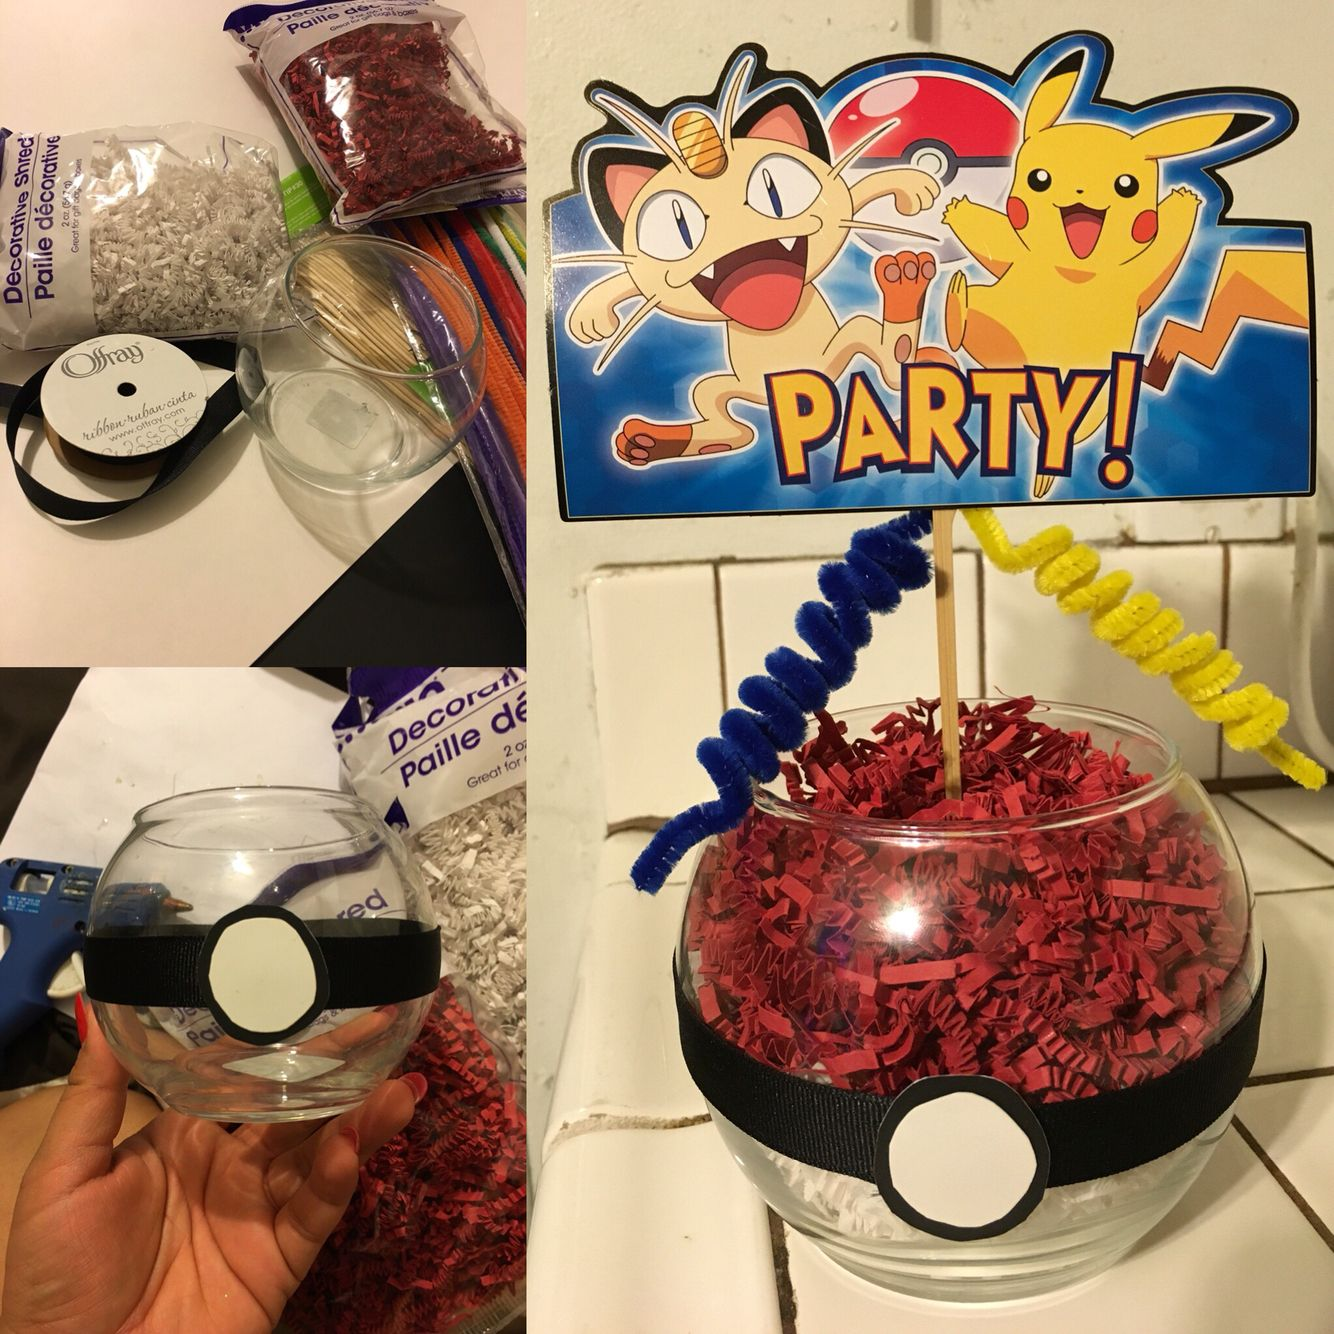 diy pokemon party centerpieces crafts photo shoot pinterest anniversaire pokemon. Black Bedroom Furniture Sets. Home Design Ideas